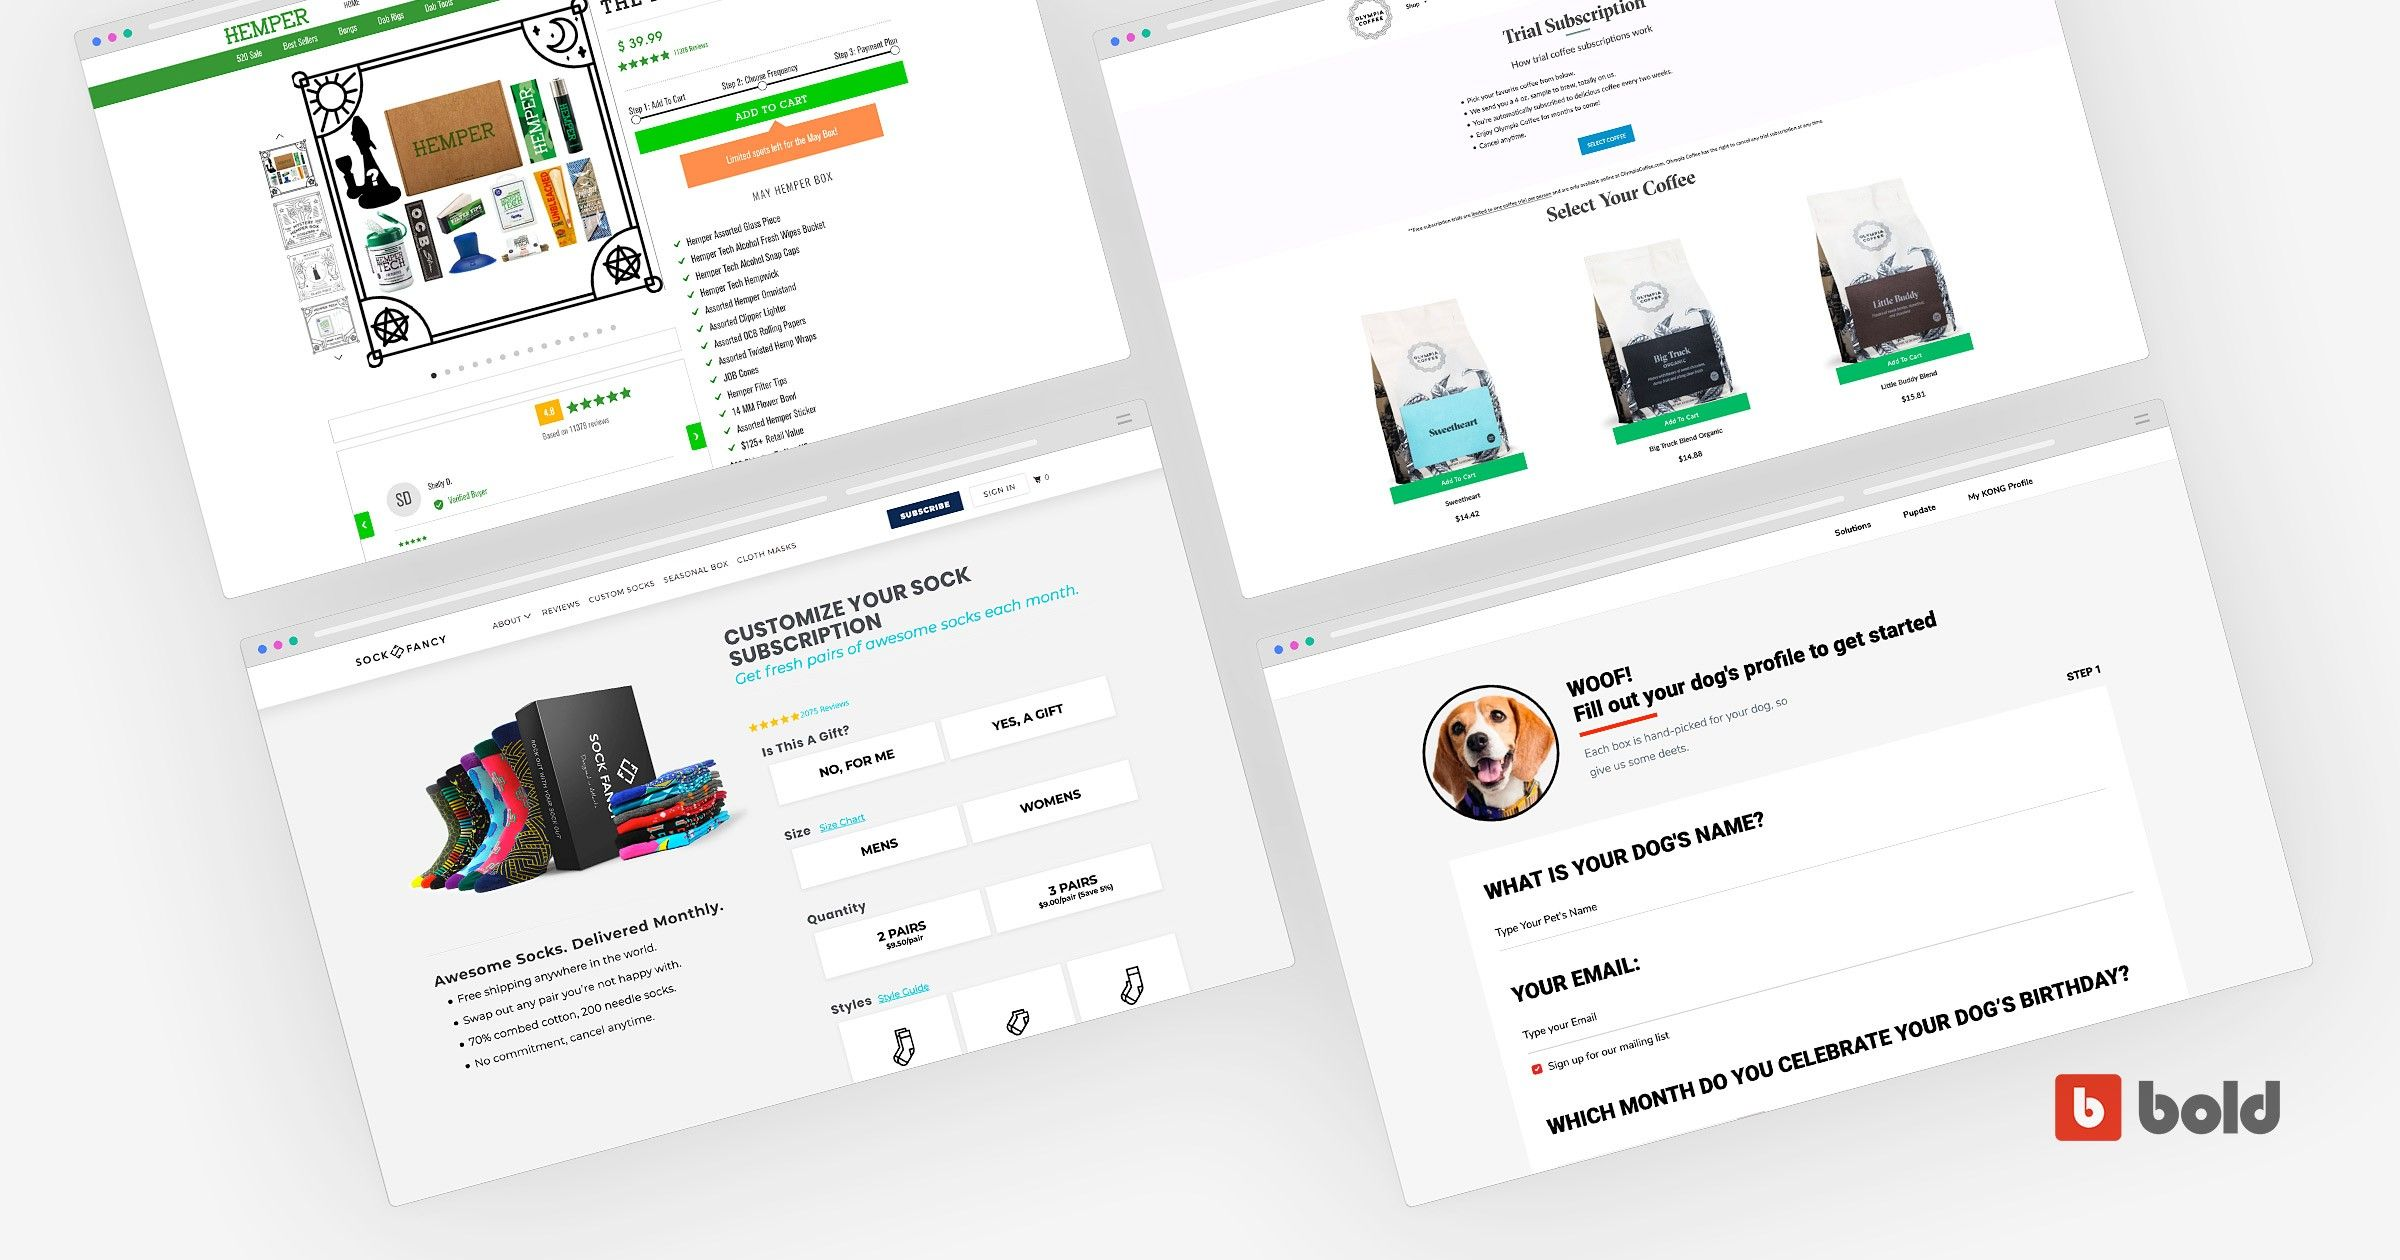 Blog banner with subscriptions onboarding examples